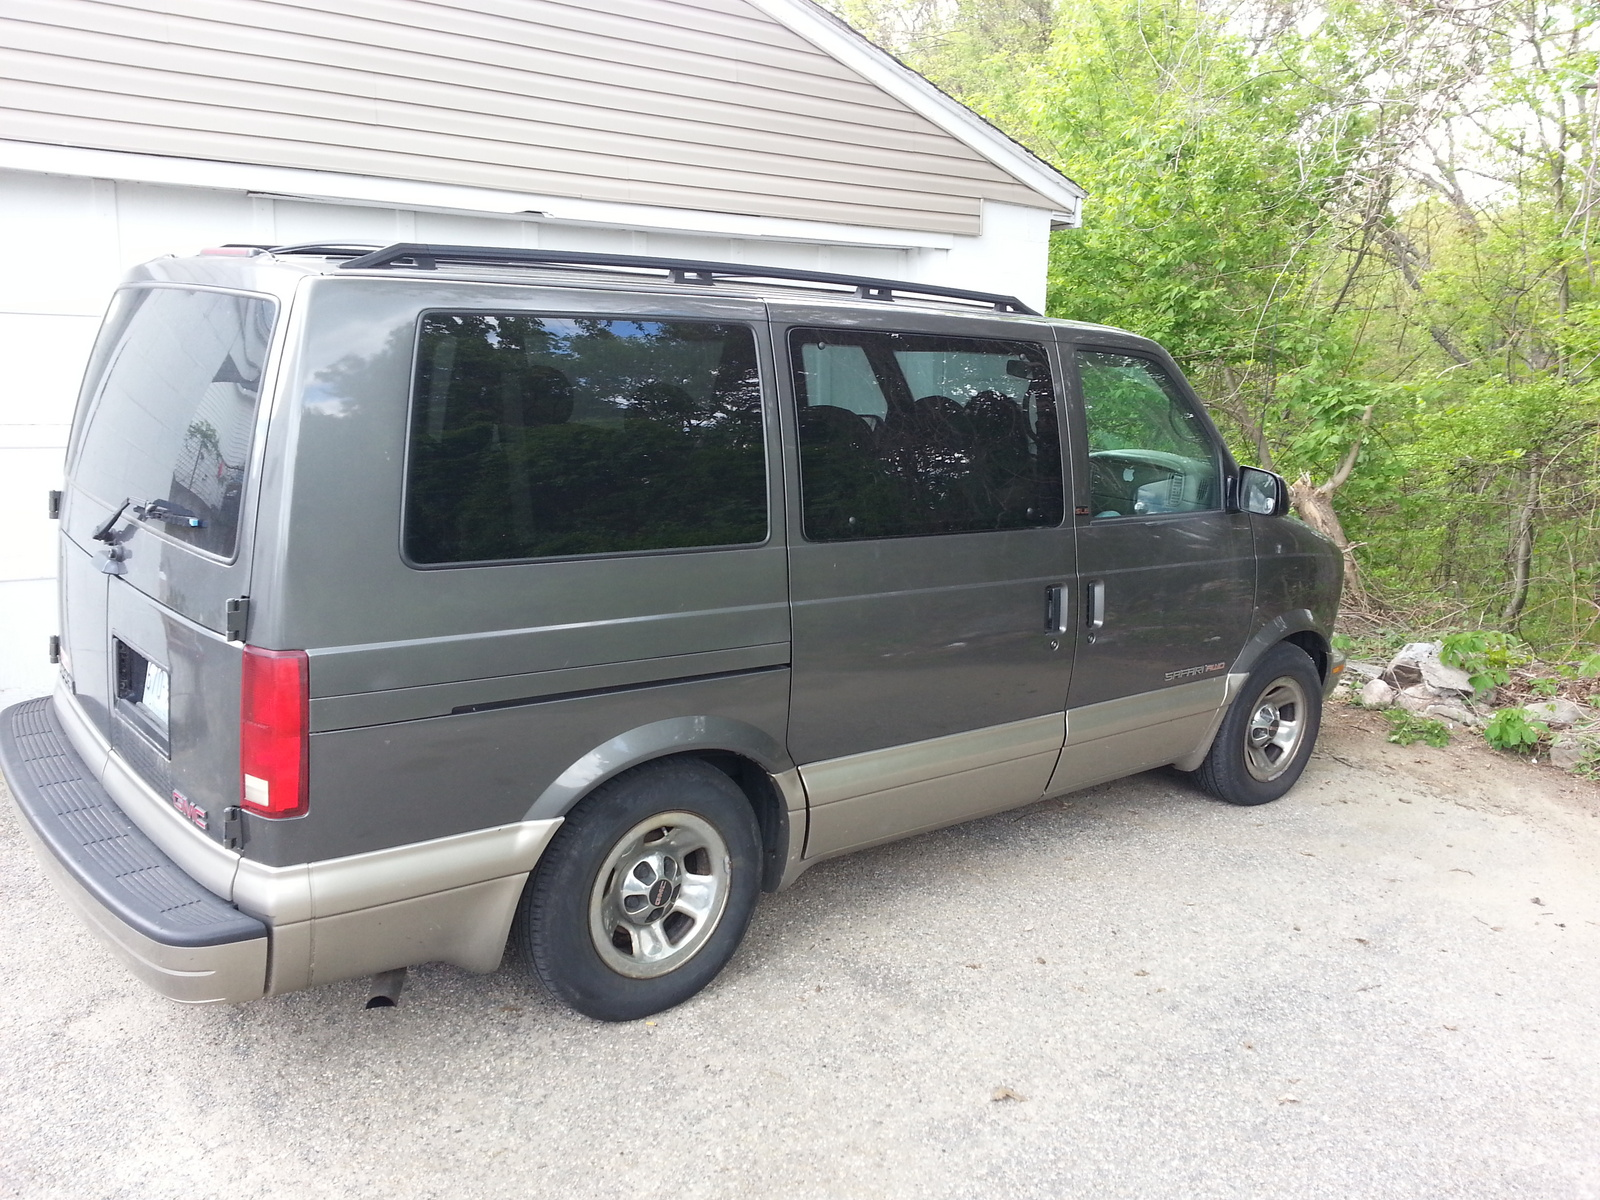 Picture of 2002 GMC Safari 3 Dr SLE AWD Passenger Van Extended